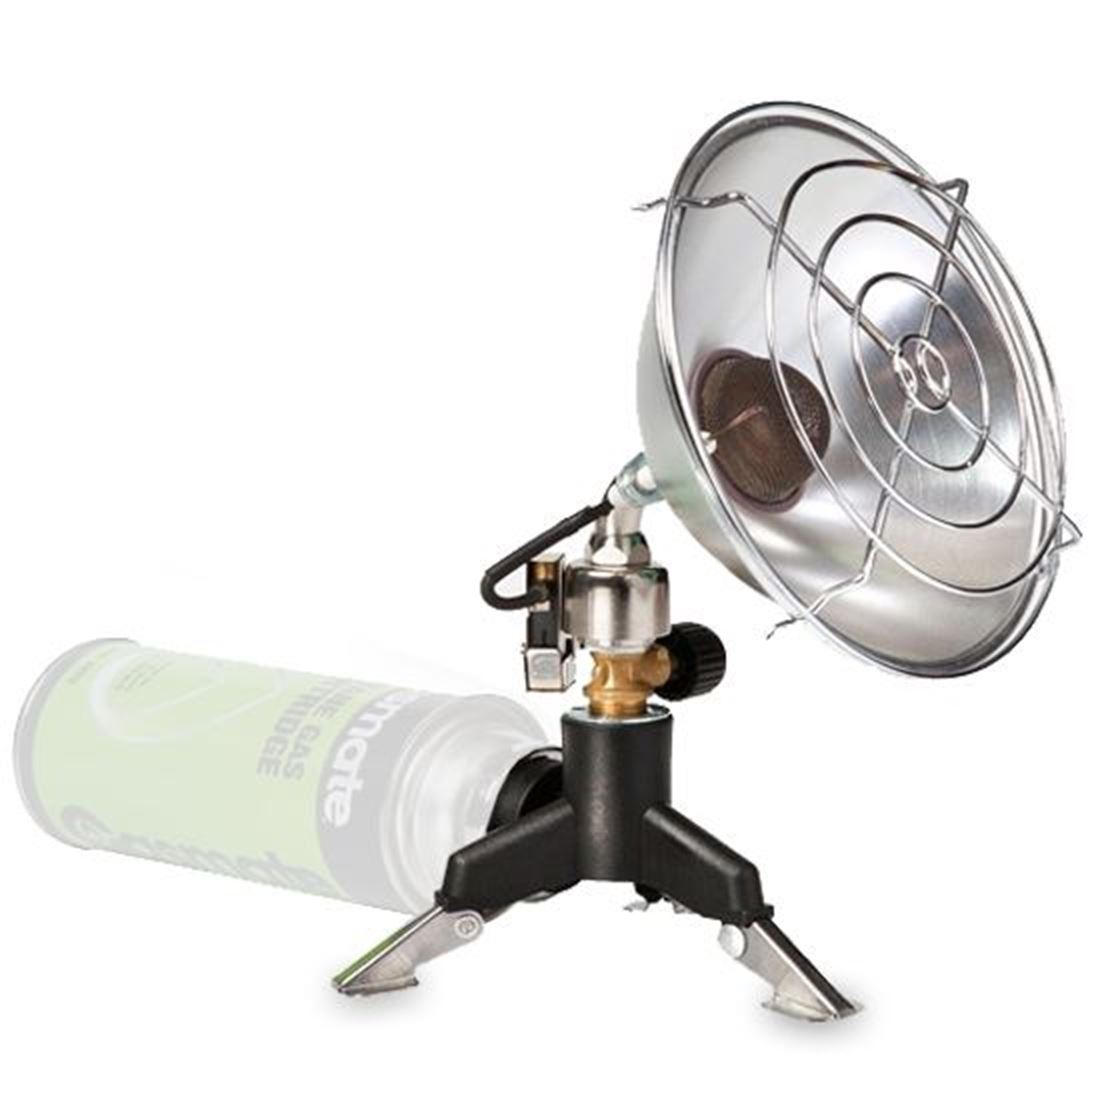 Picture of Gasmate Portable Butane Heater